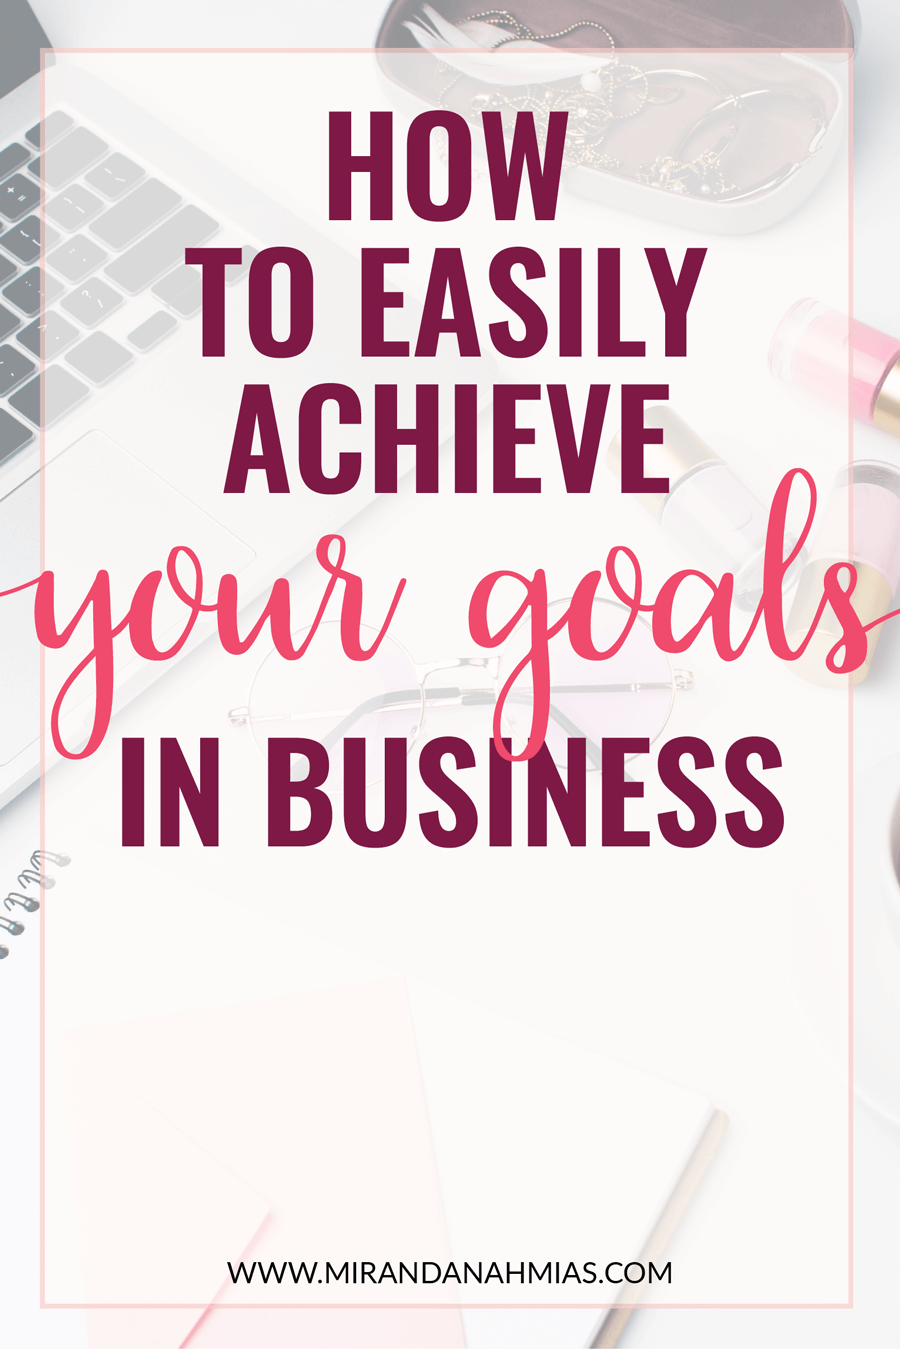 Not achieving goals? Here's 4 tips to easily achieve YOUR goals in business | Miranda Nahmias & Co. Digital Marketing — Clients, Systems, Marketing